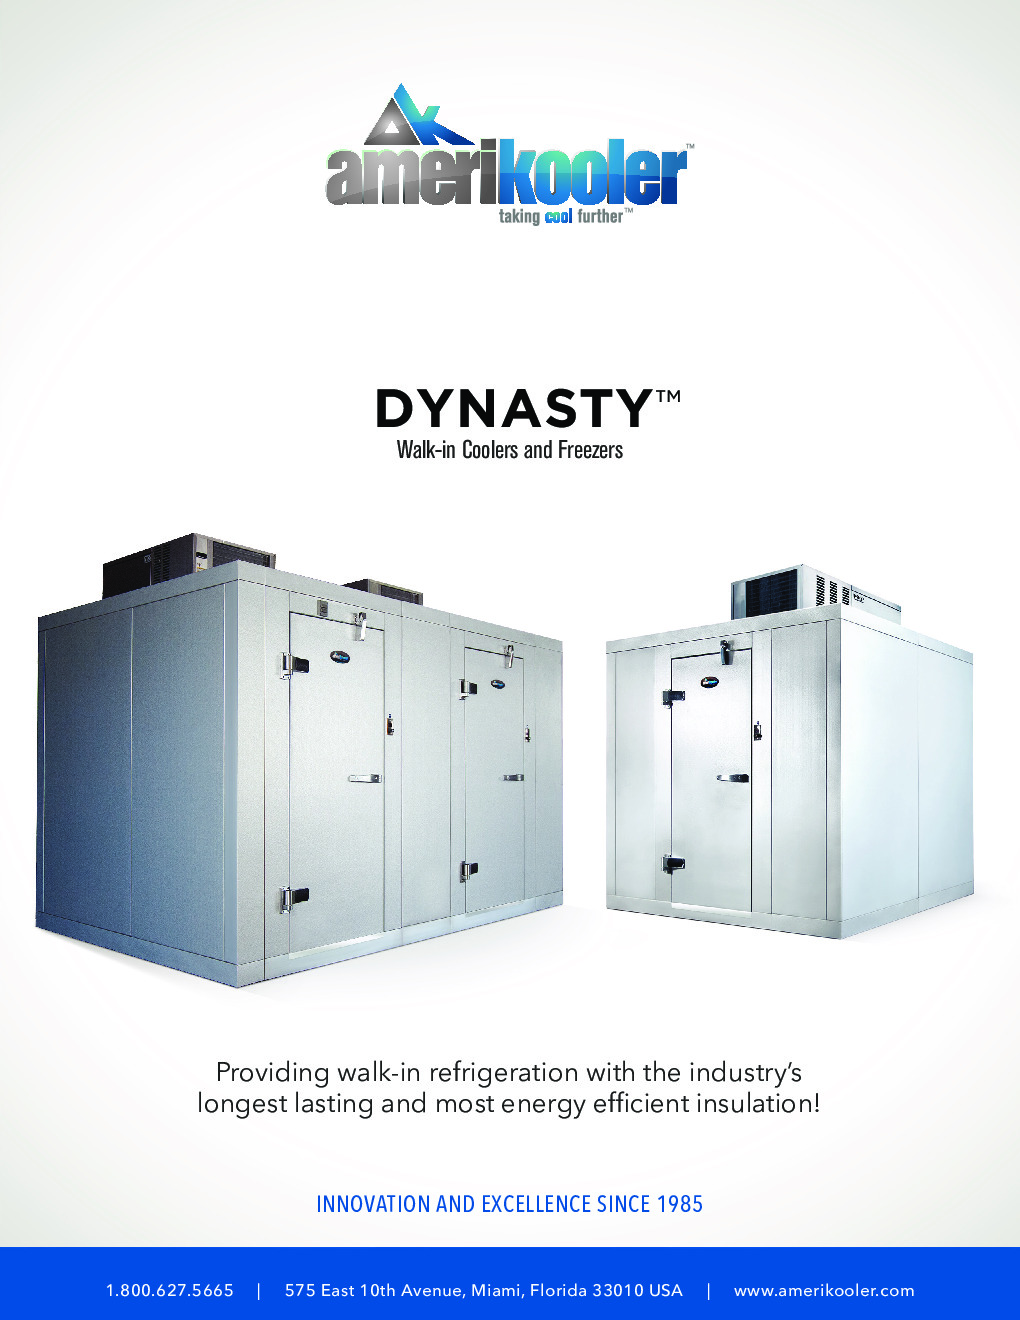 AmeriKooler DW061177N-4/7 Indoor 6' X 11' Walk-In, 7' L Cooler without Floor and 4' L Freezer, Box Only